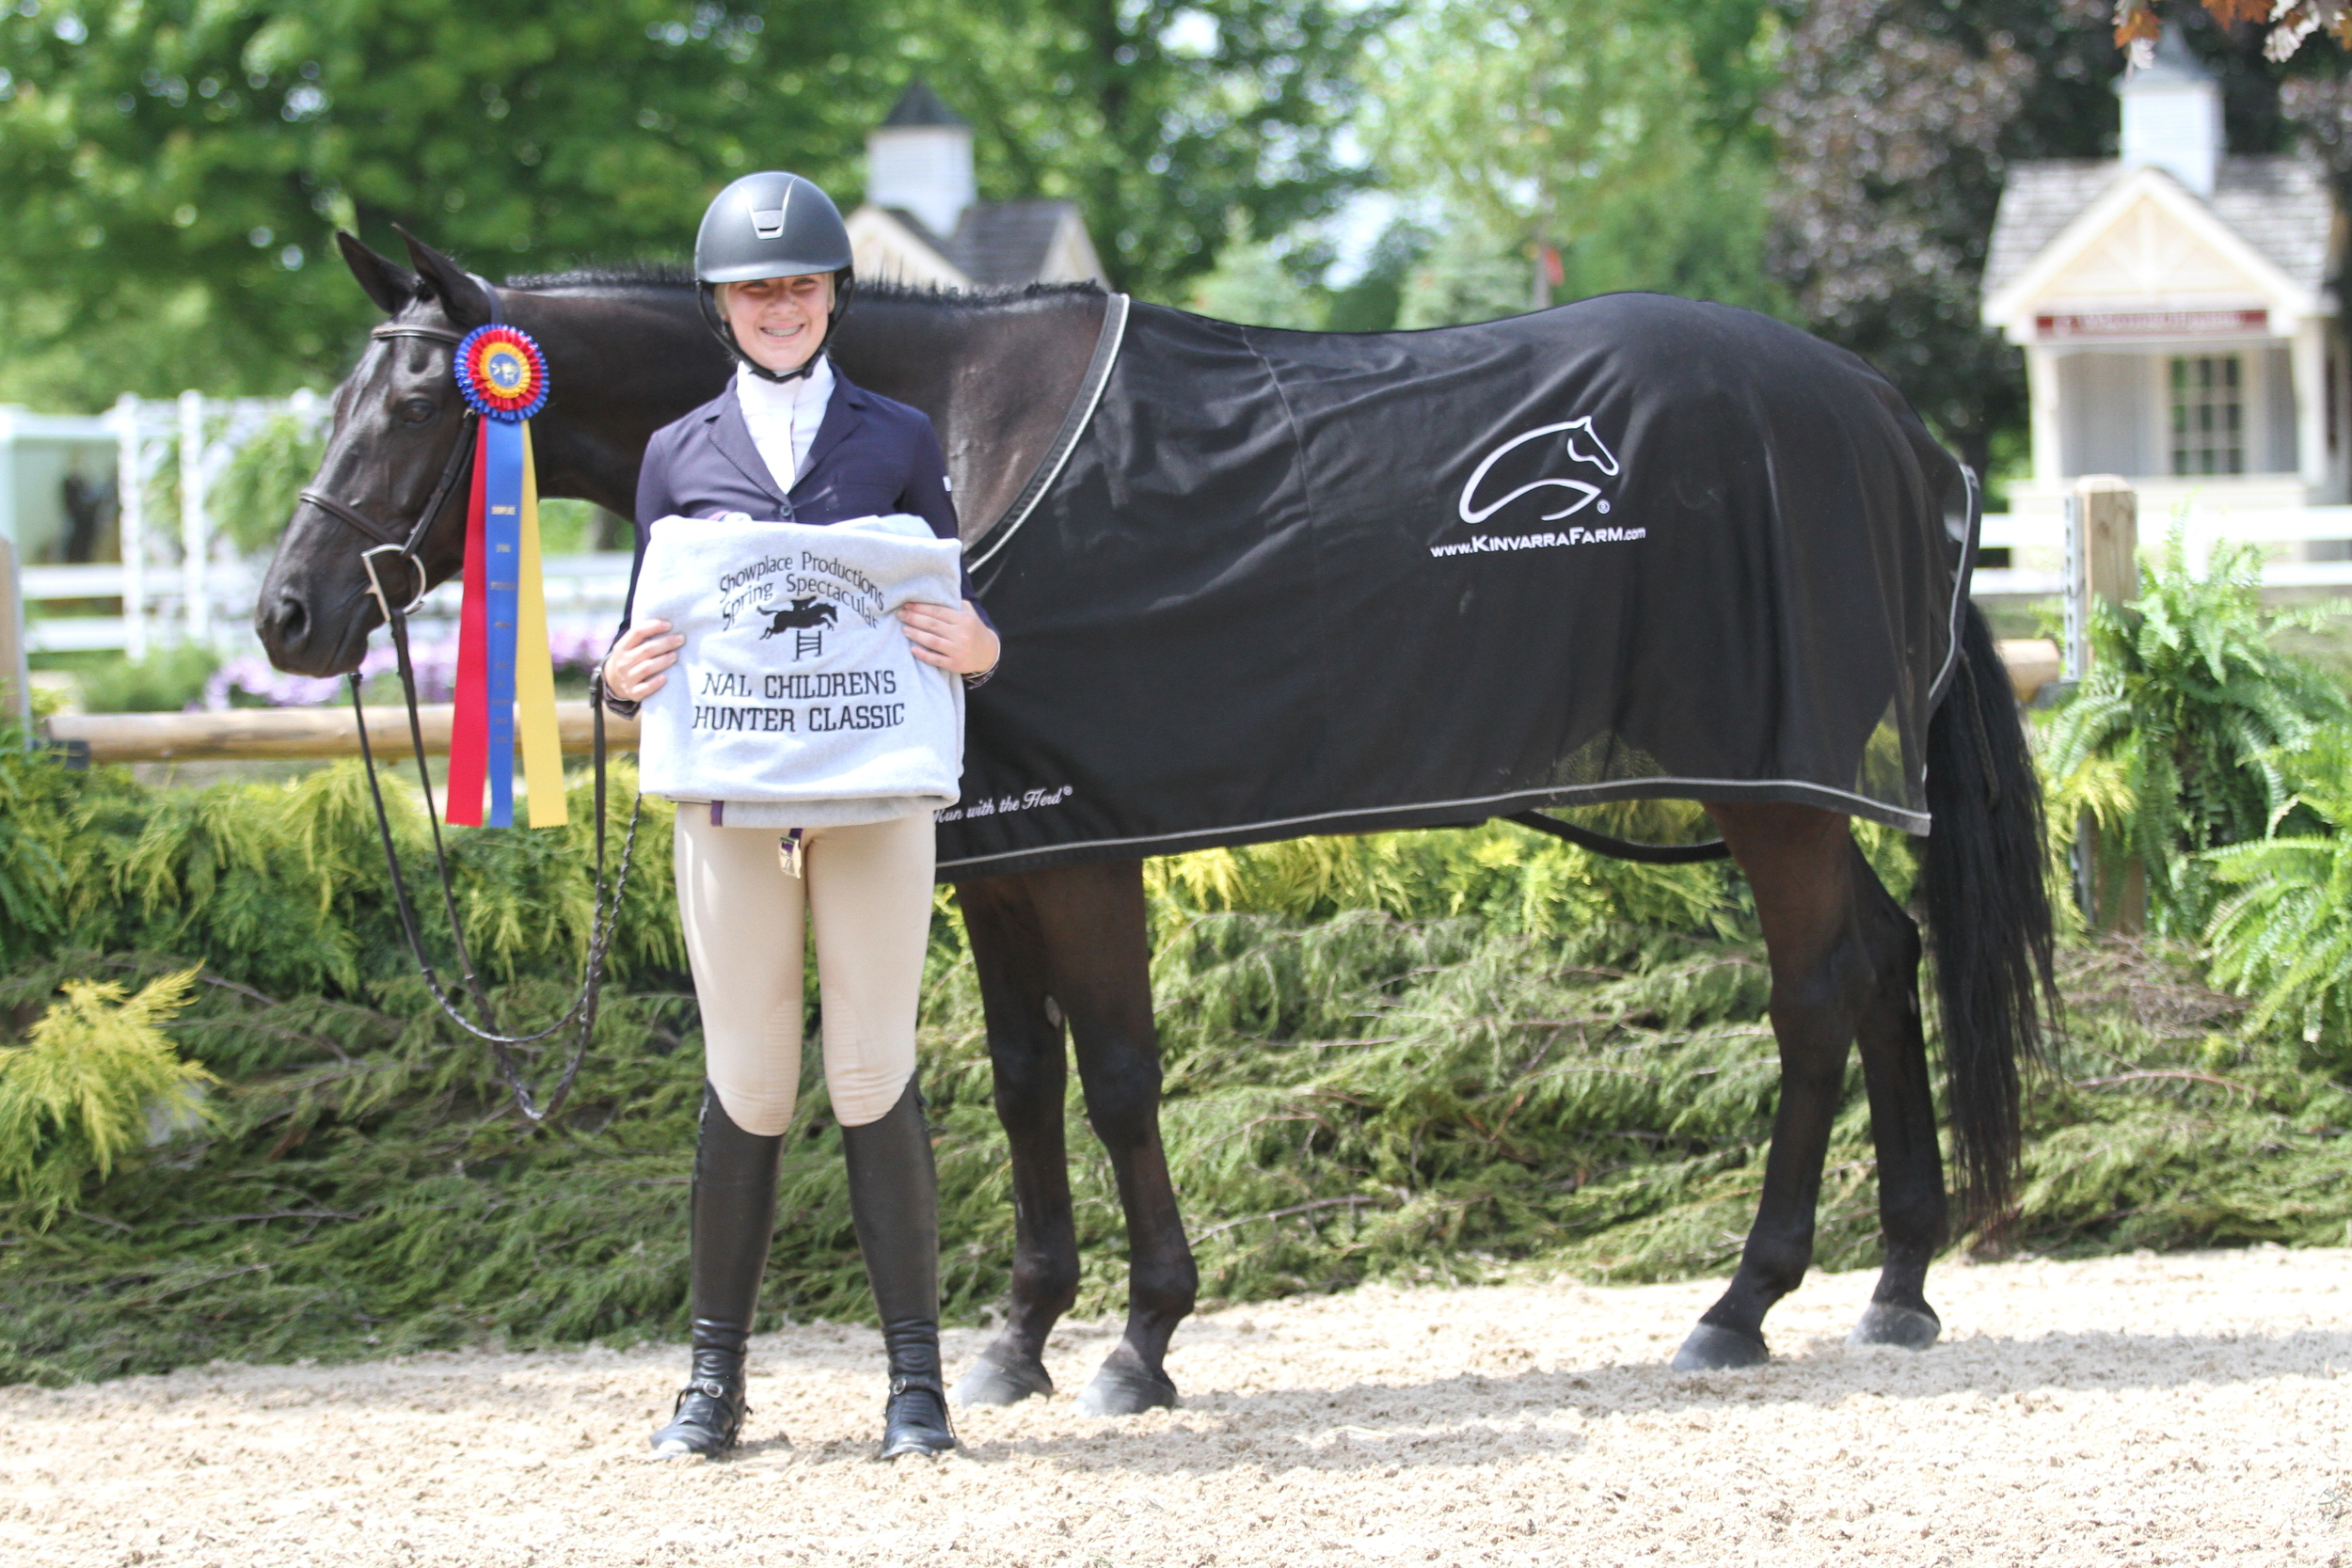 $1000 NAL Childrens Hunter Classic  Bravo, owned by Stephanie Kraus and ridden by Delaney Hoffman took the title in the $1000 NAL Childrens Hunter Classic.